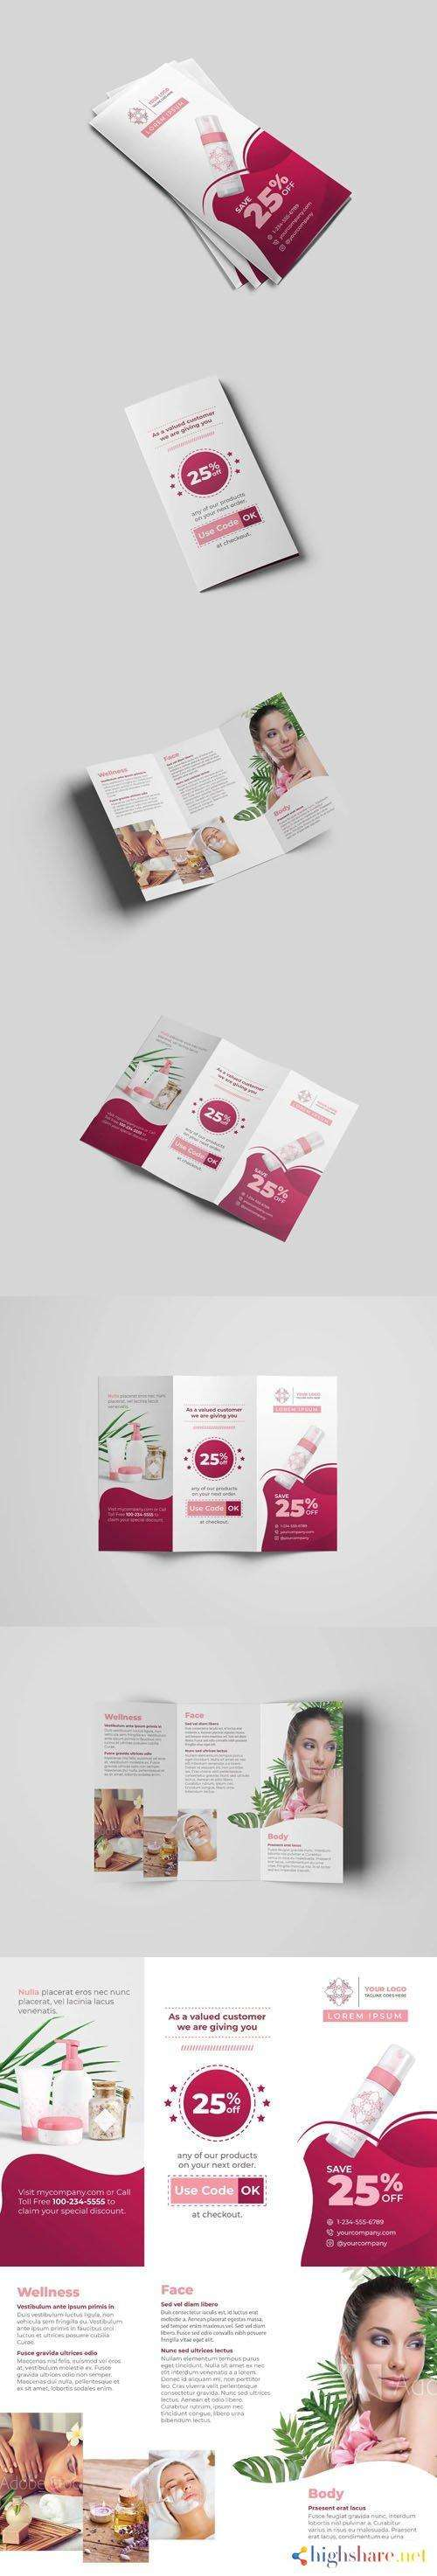 cosmetic and beauty tri fold templates 5f41f0b3c5aab - Cosmetic and Beauty Tri-Fold Templates